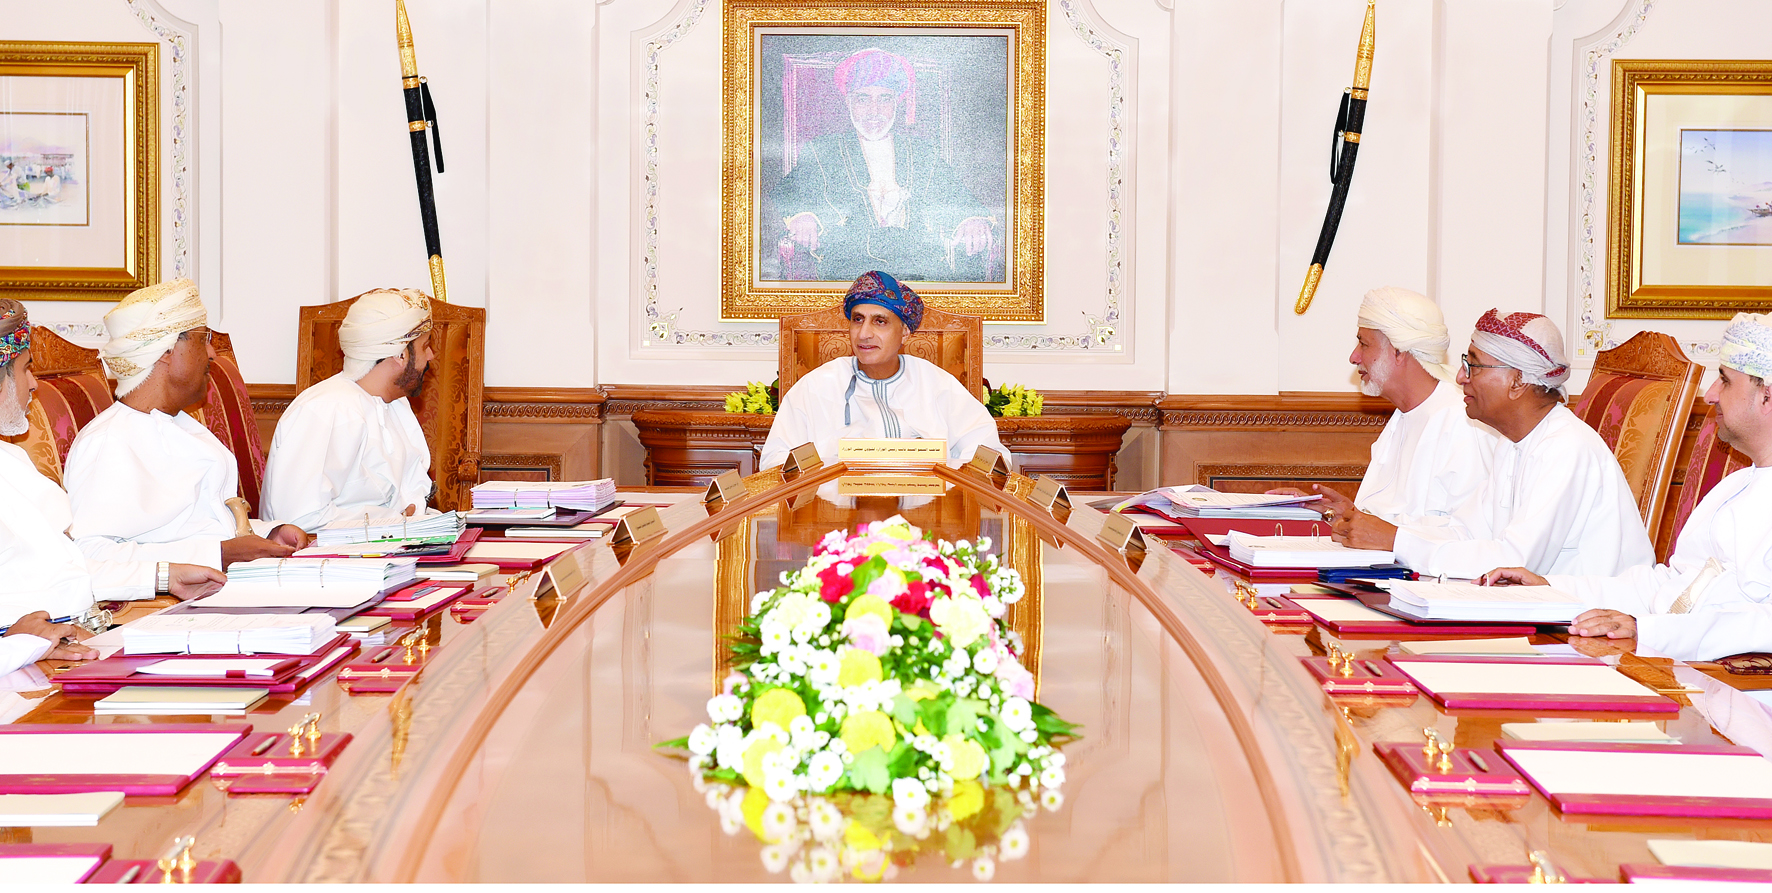 Sayyid Fahd led Oman committee reviews recommendations of GCC panel